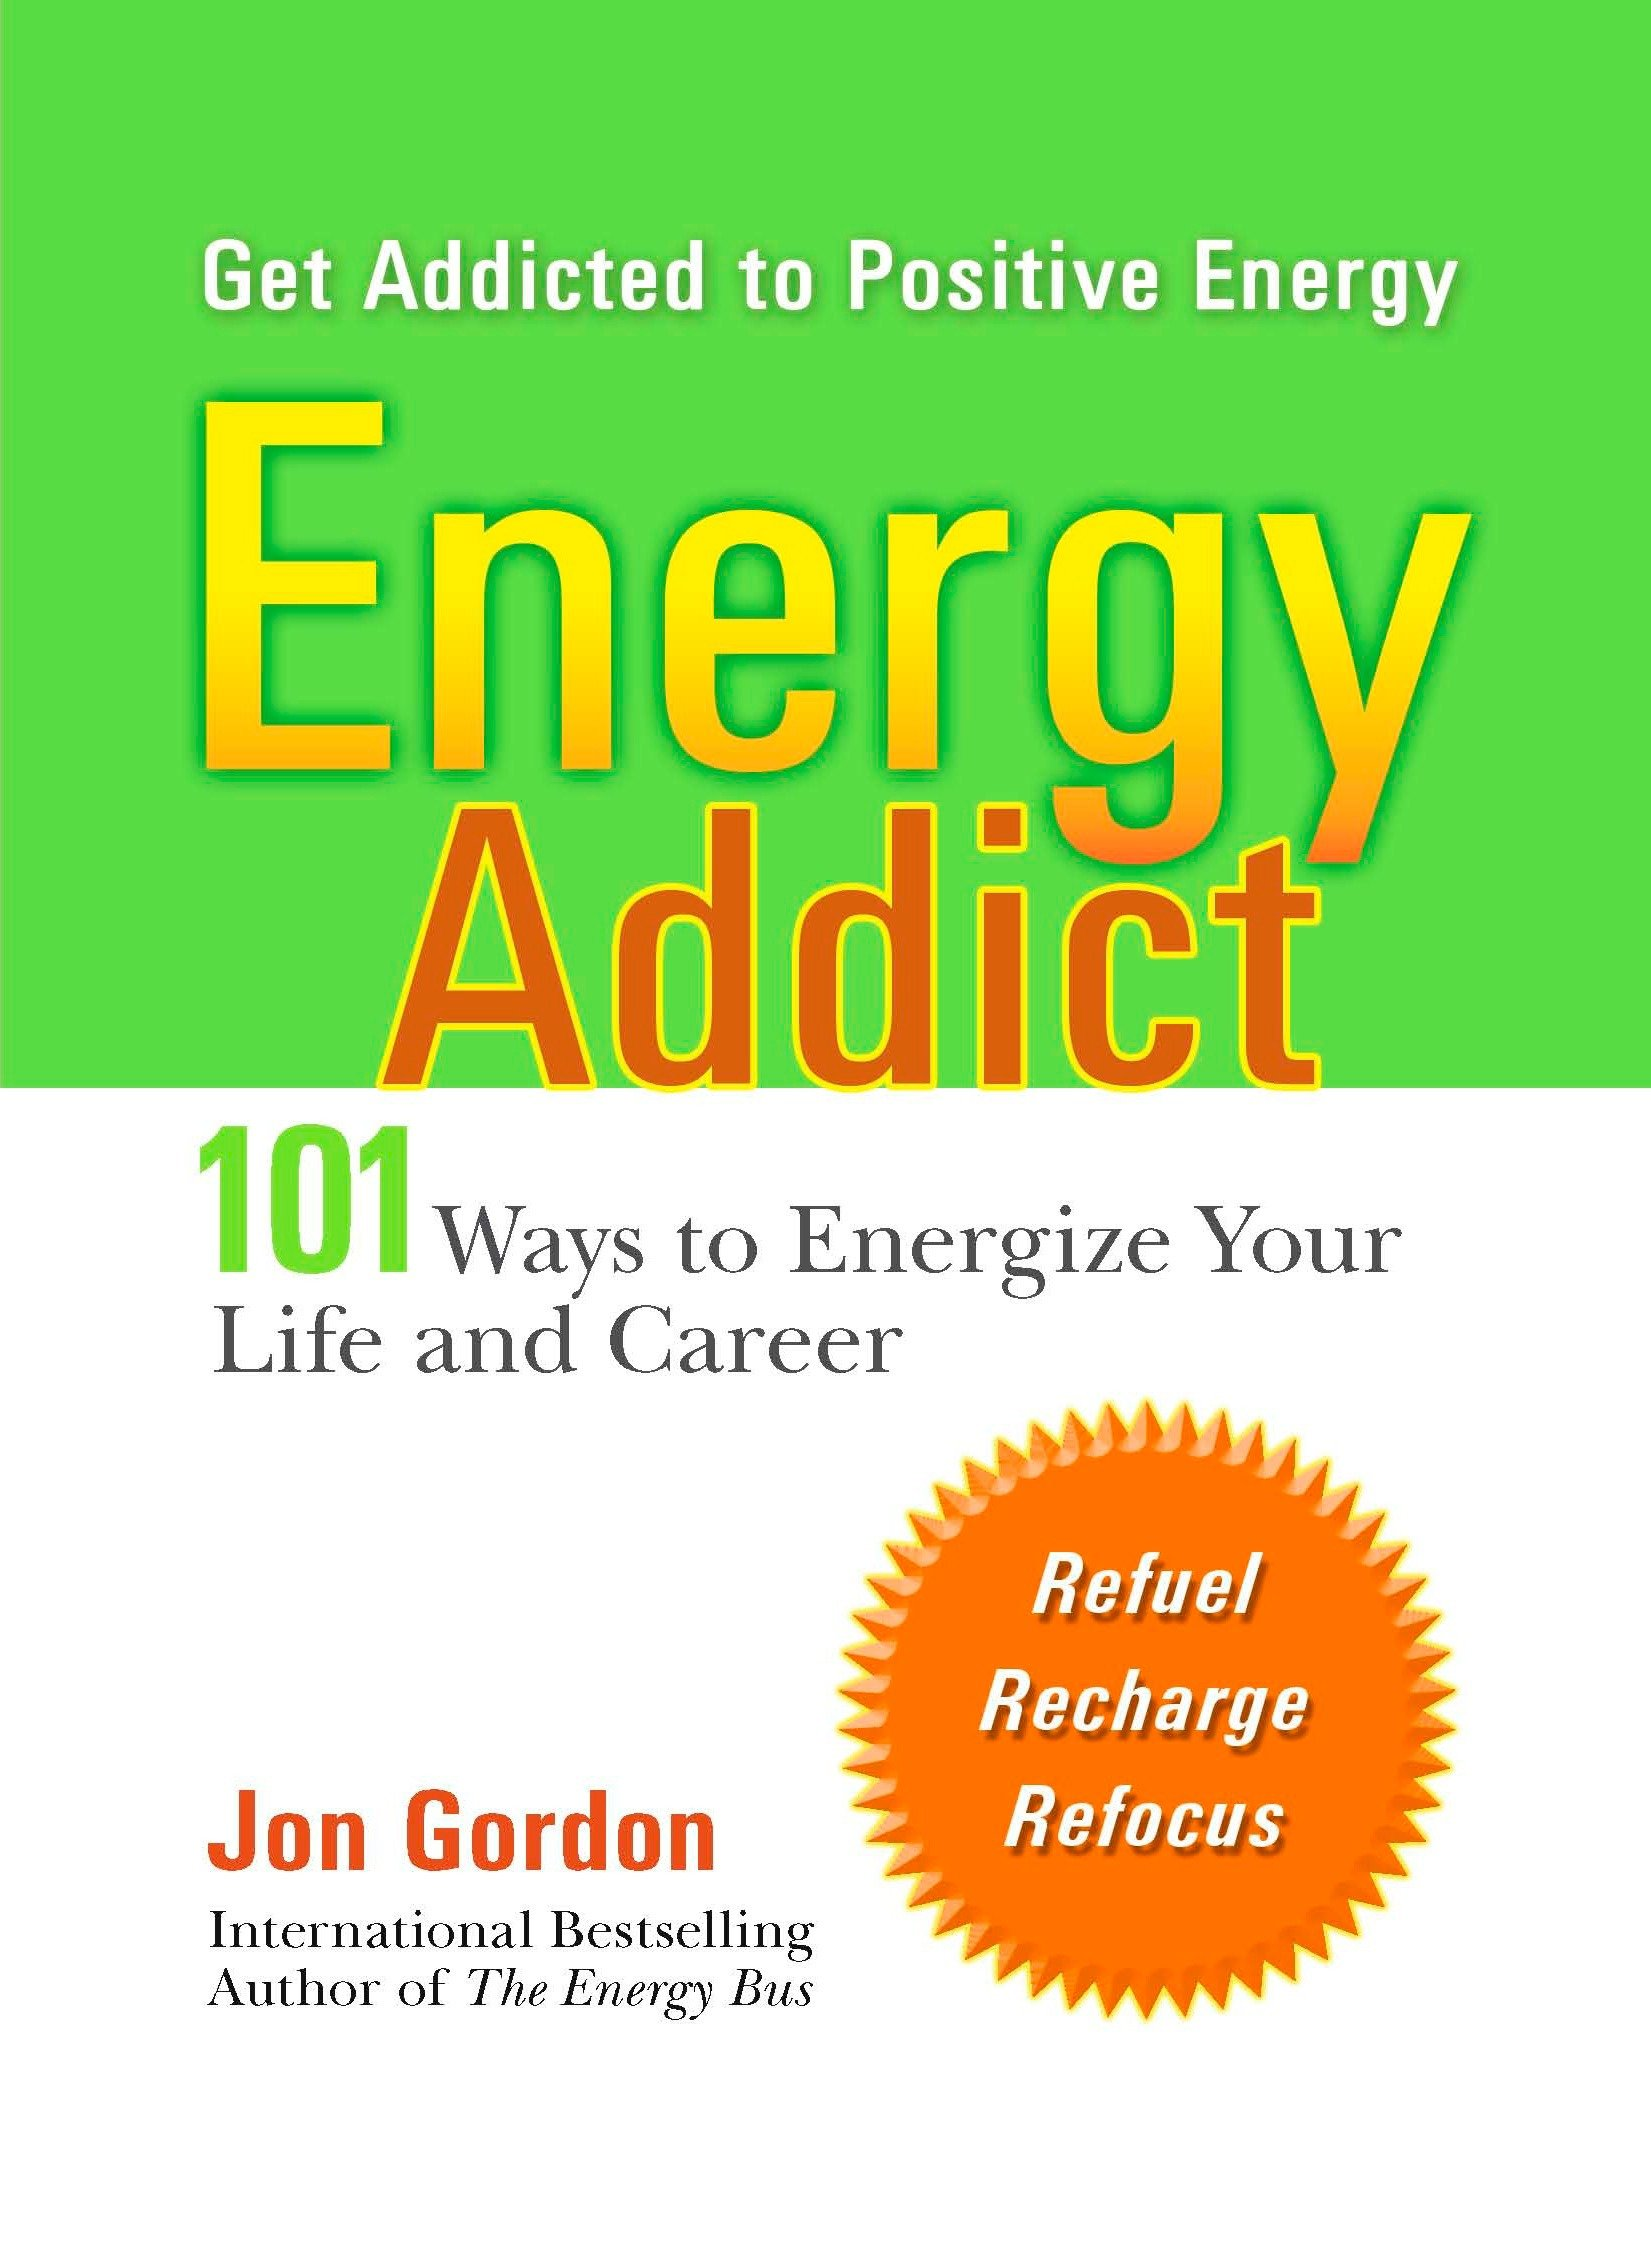 Energy Addict 101 Physical, Mental, and Spiritual Ways to Energize Your Life